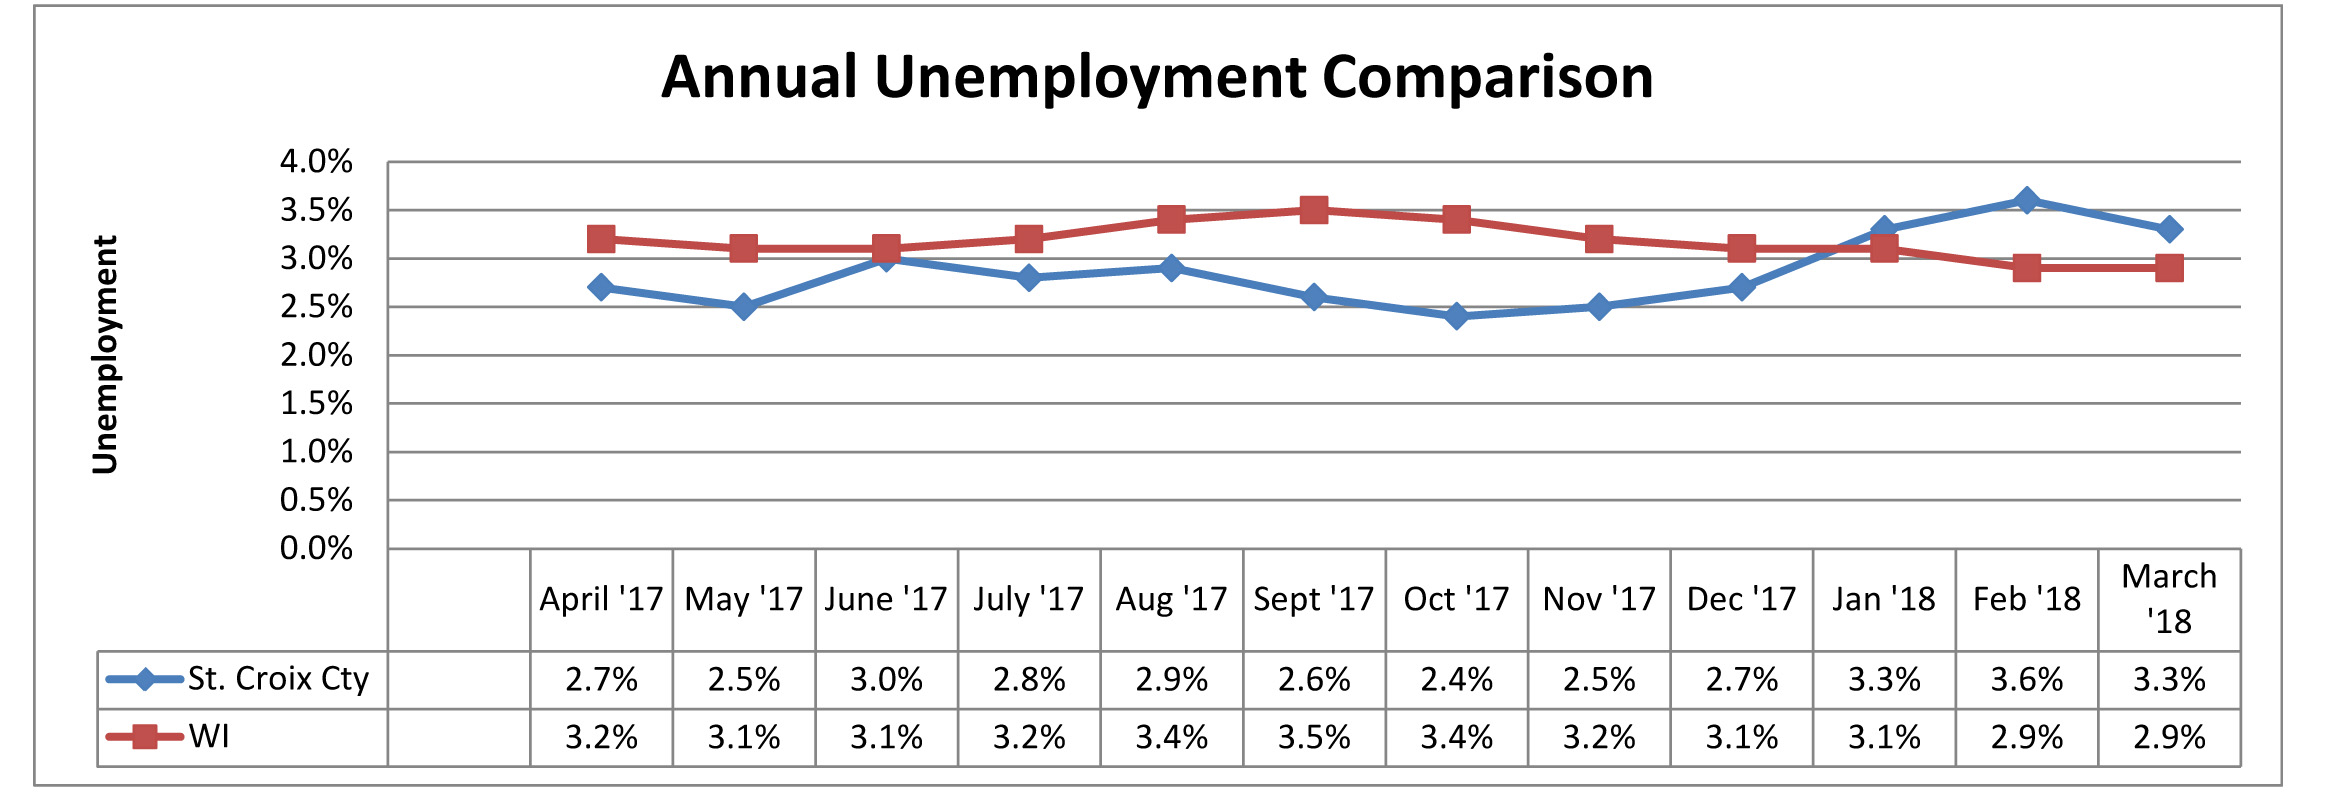 March 2018 Unemployment Comparison